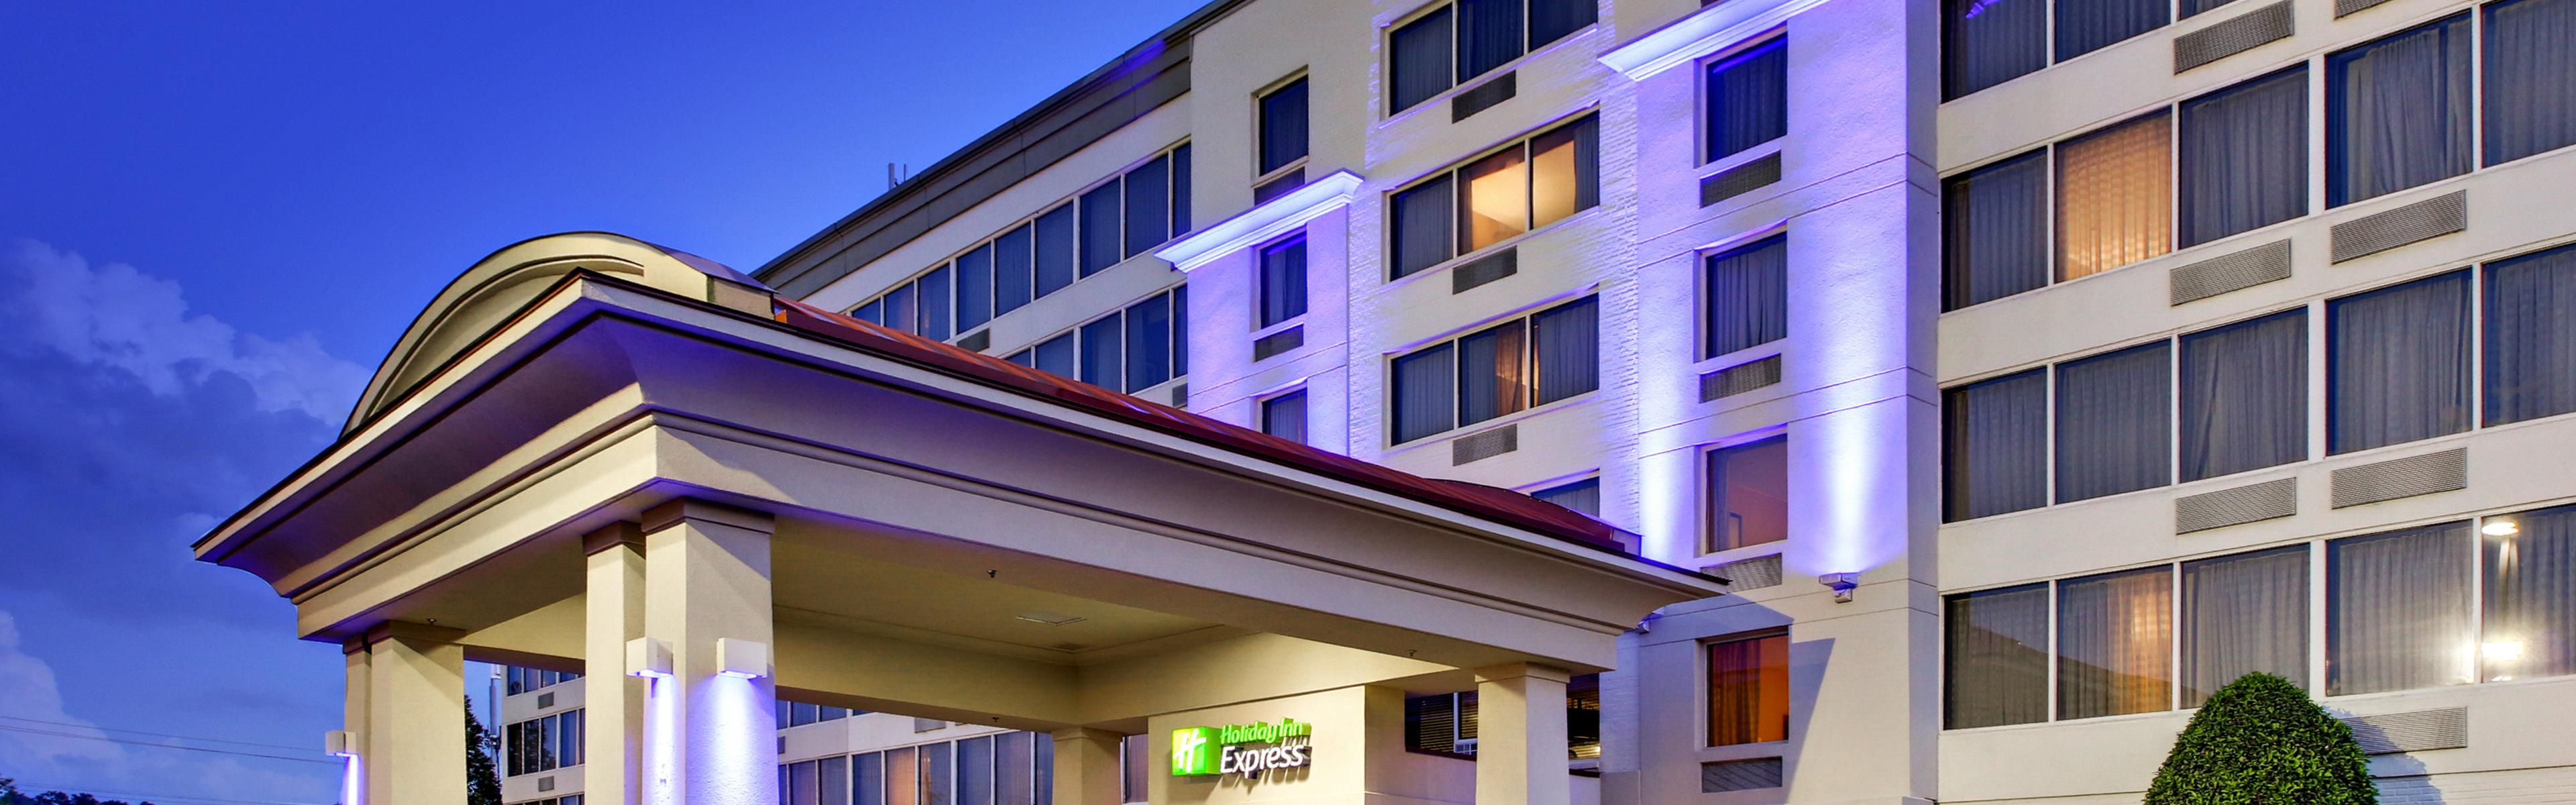 Holiday Inn Express Atlanta-Kennesaw image 0